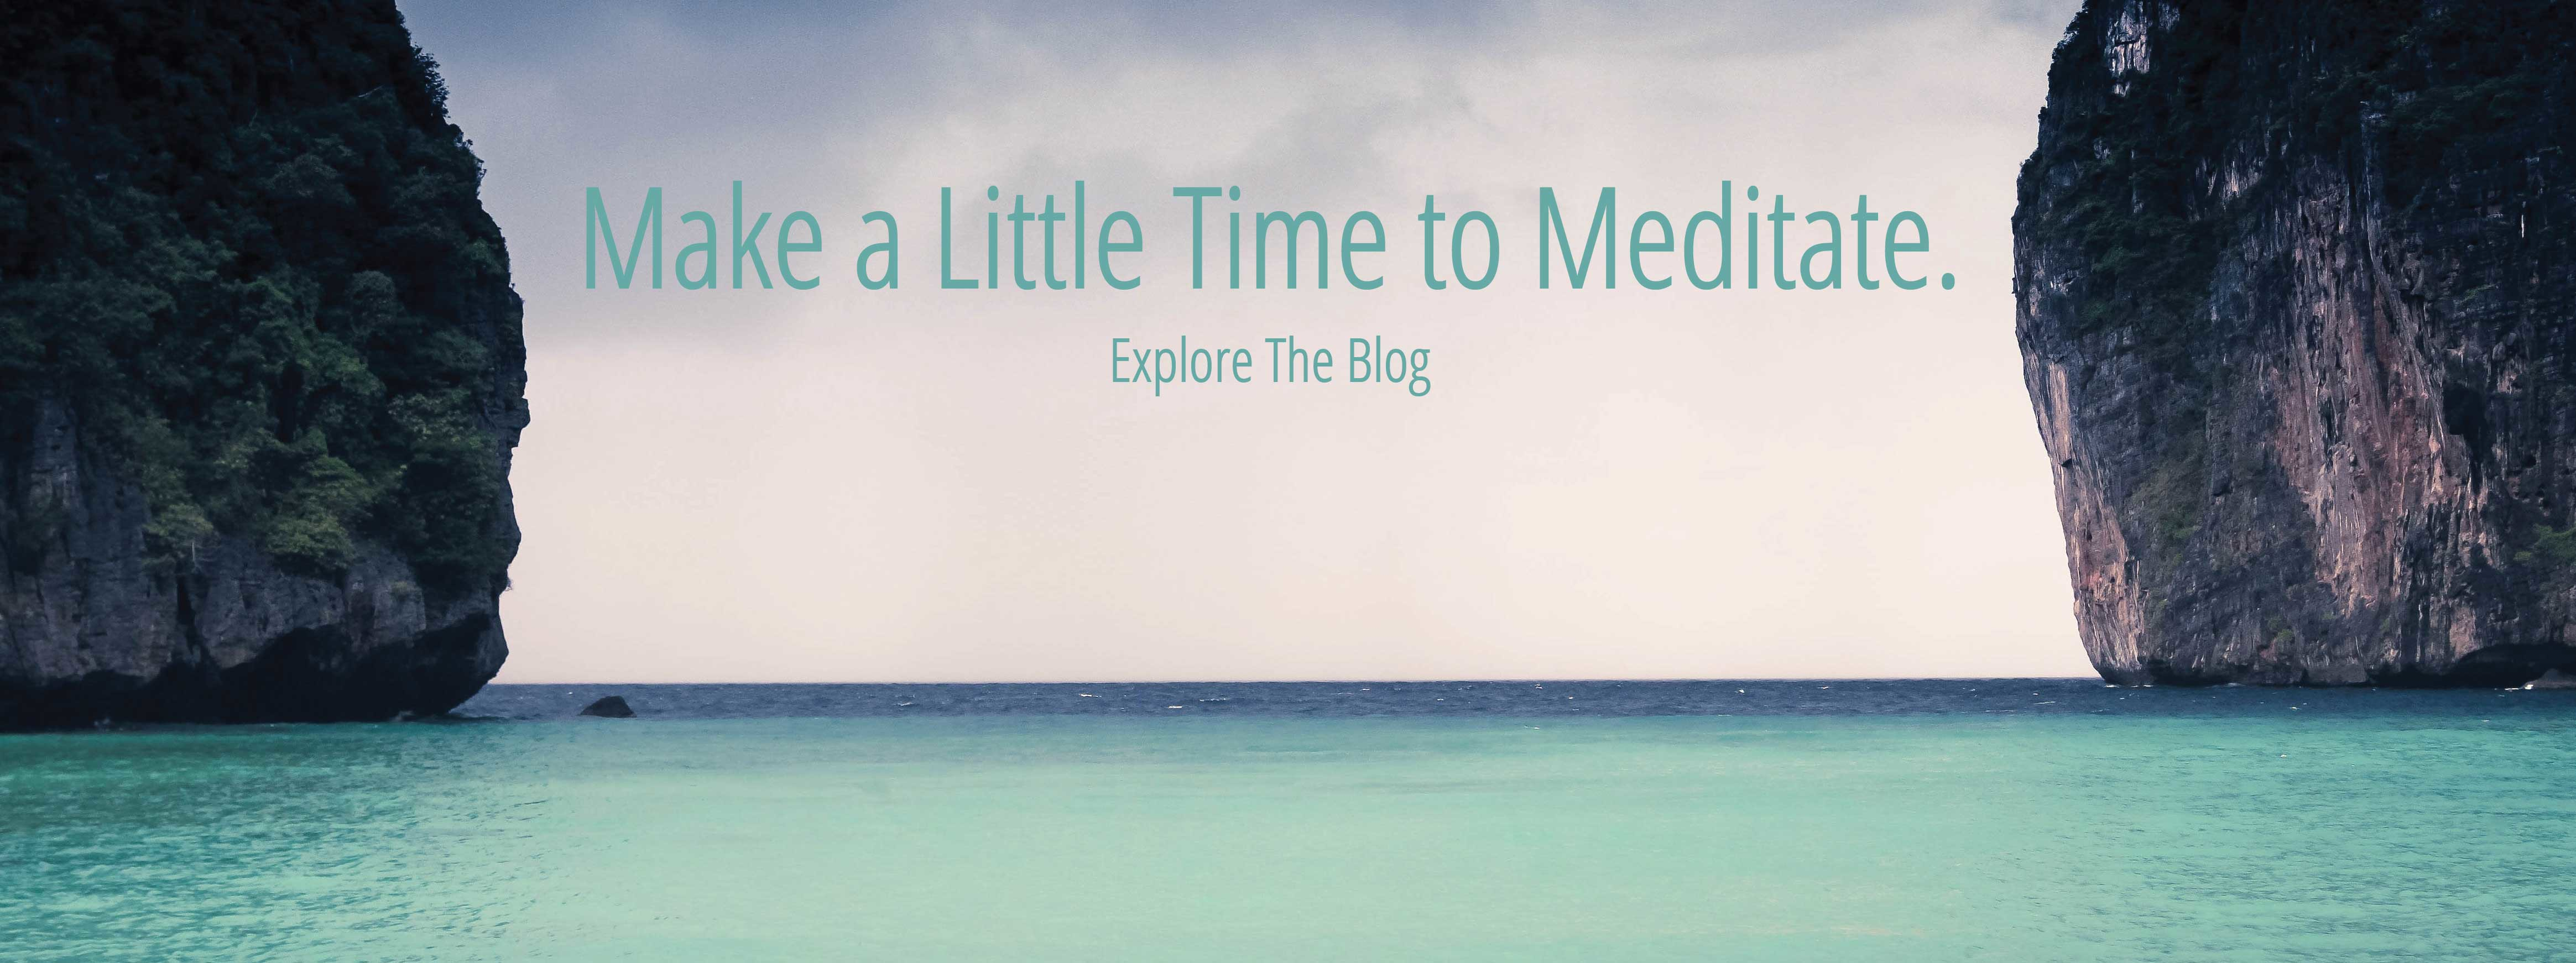 Make a Little Time to Meditate